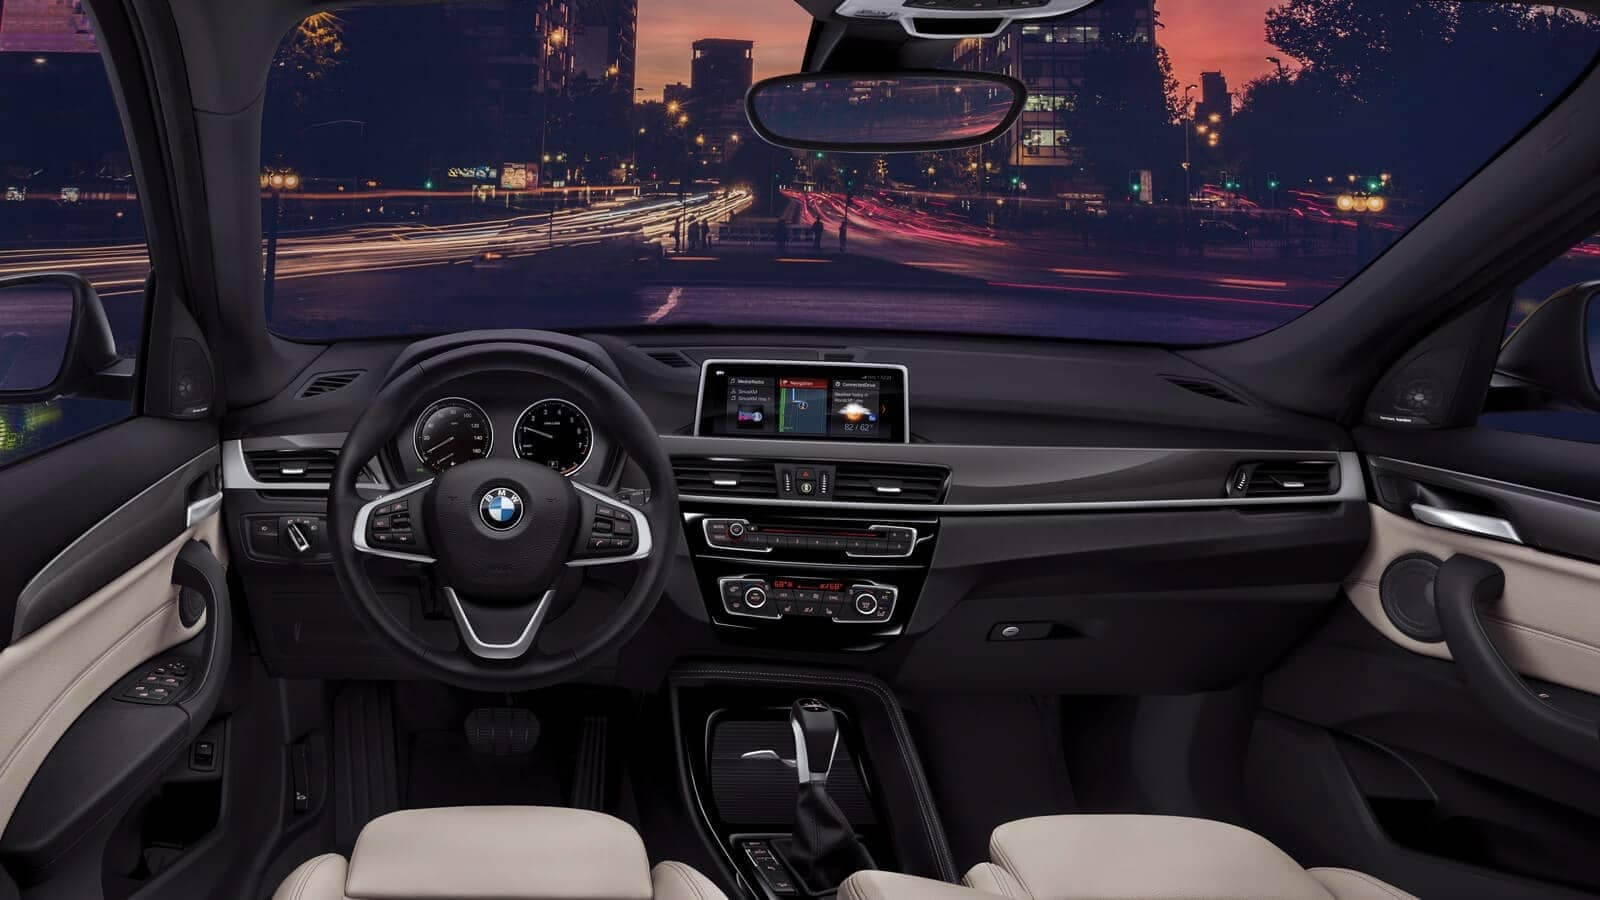 2019-BMW-X1-central-information-display